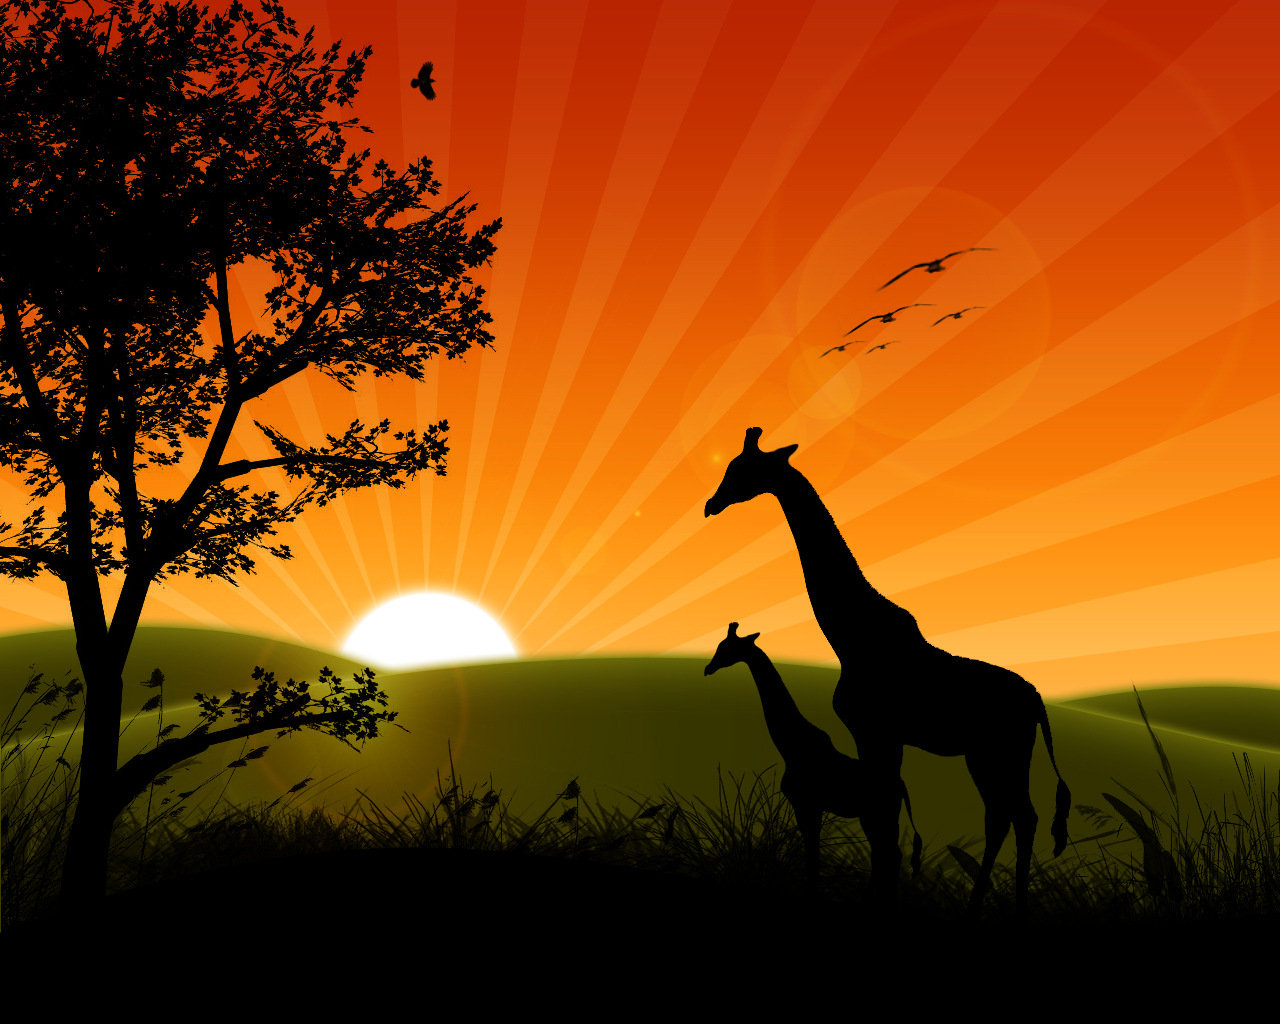 Sunrise Pictures Wallpaper - WallpaperSafari